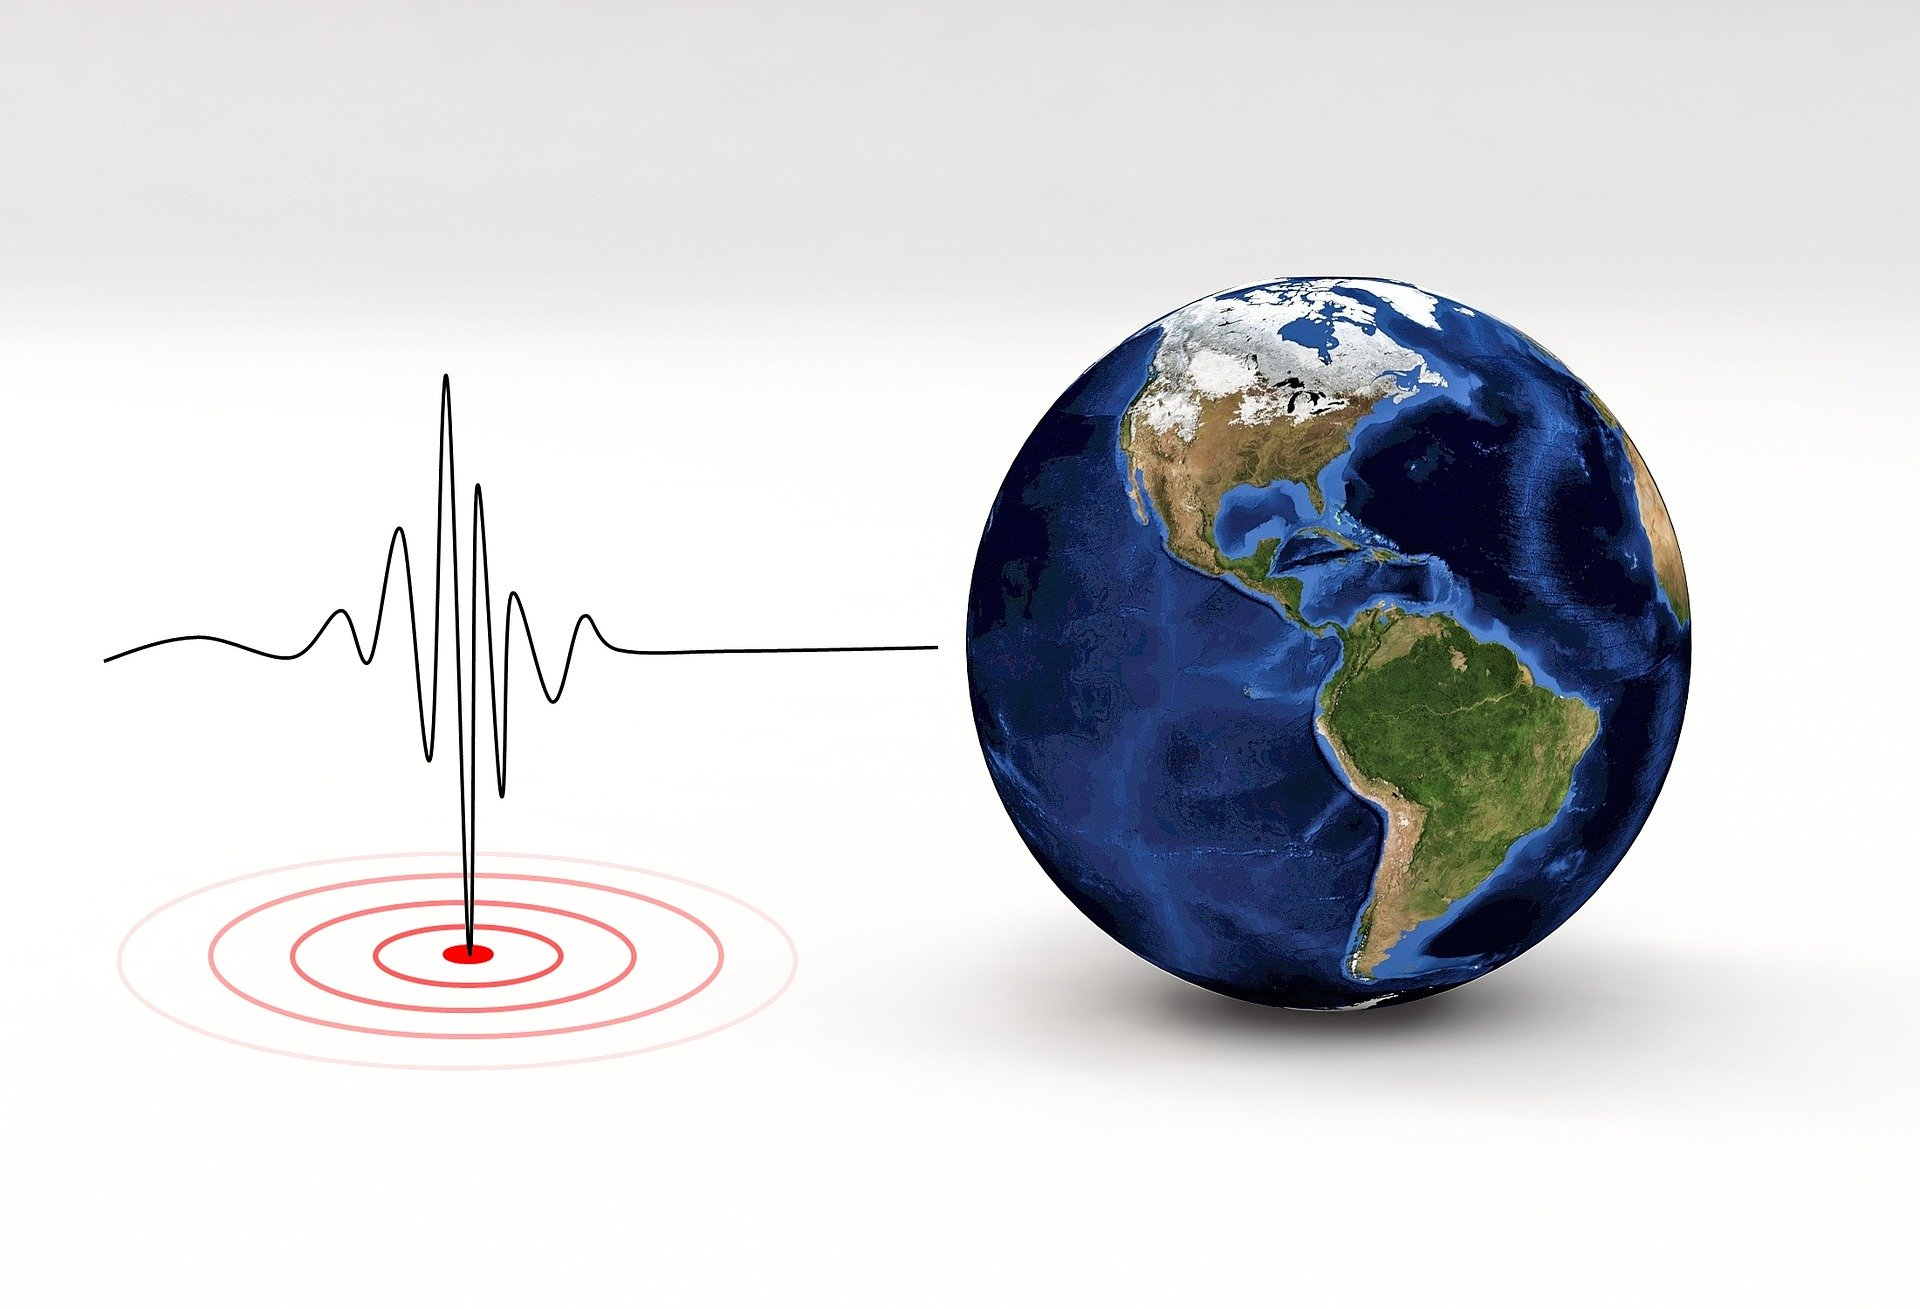 Study Uses Seismic Noise To Track Water Levels In